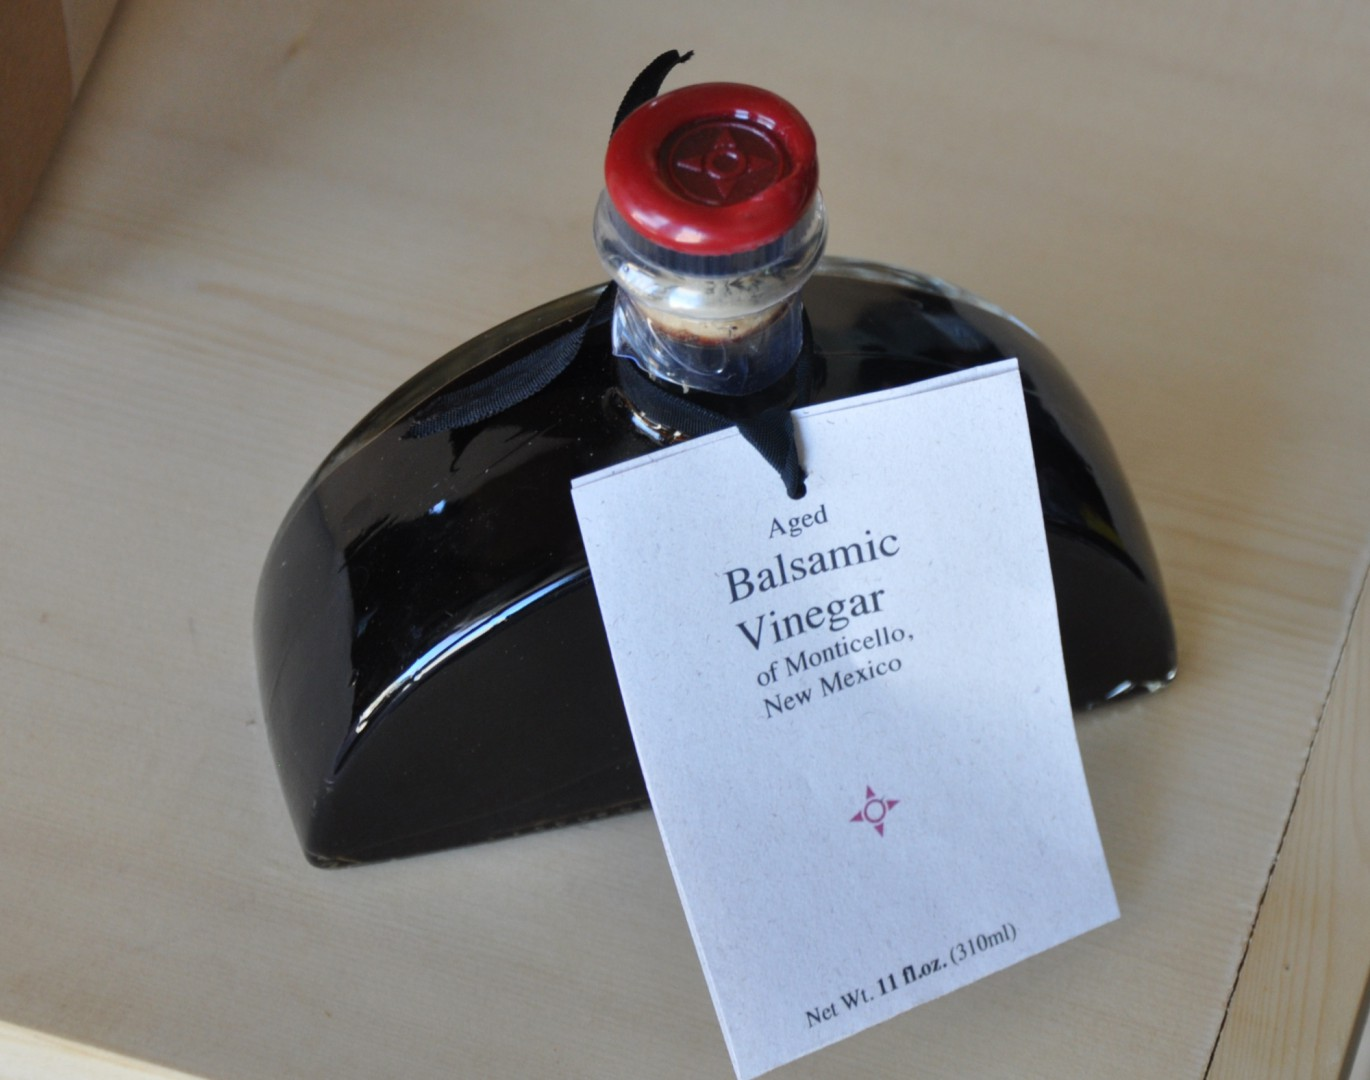 Age Balsamic Vinegar of Monticello New Mexico